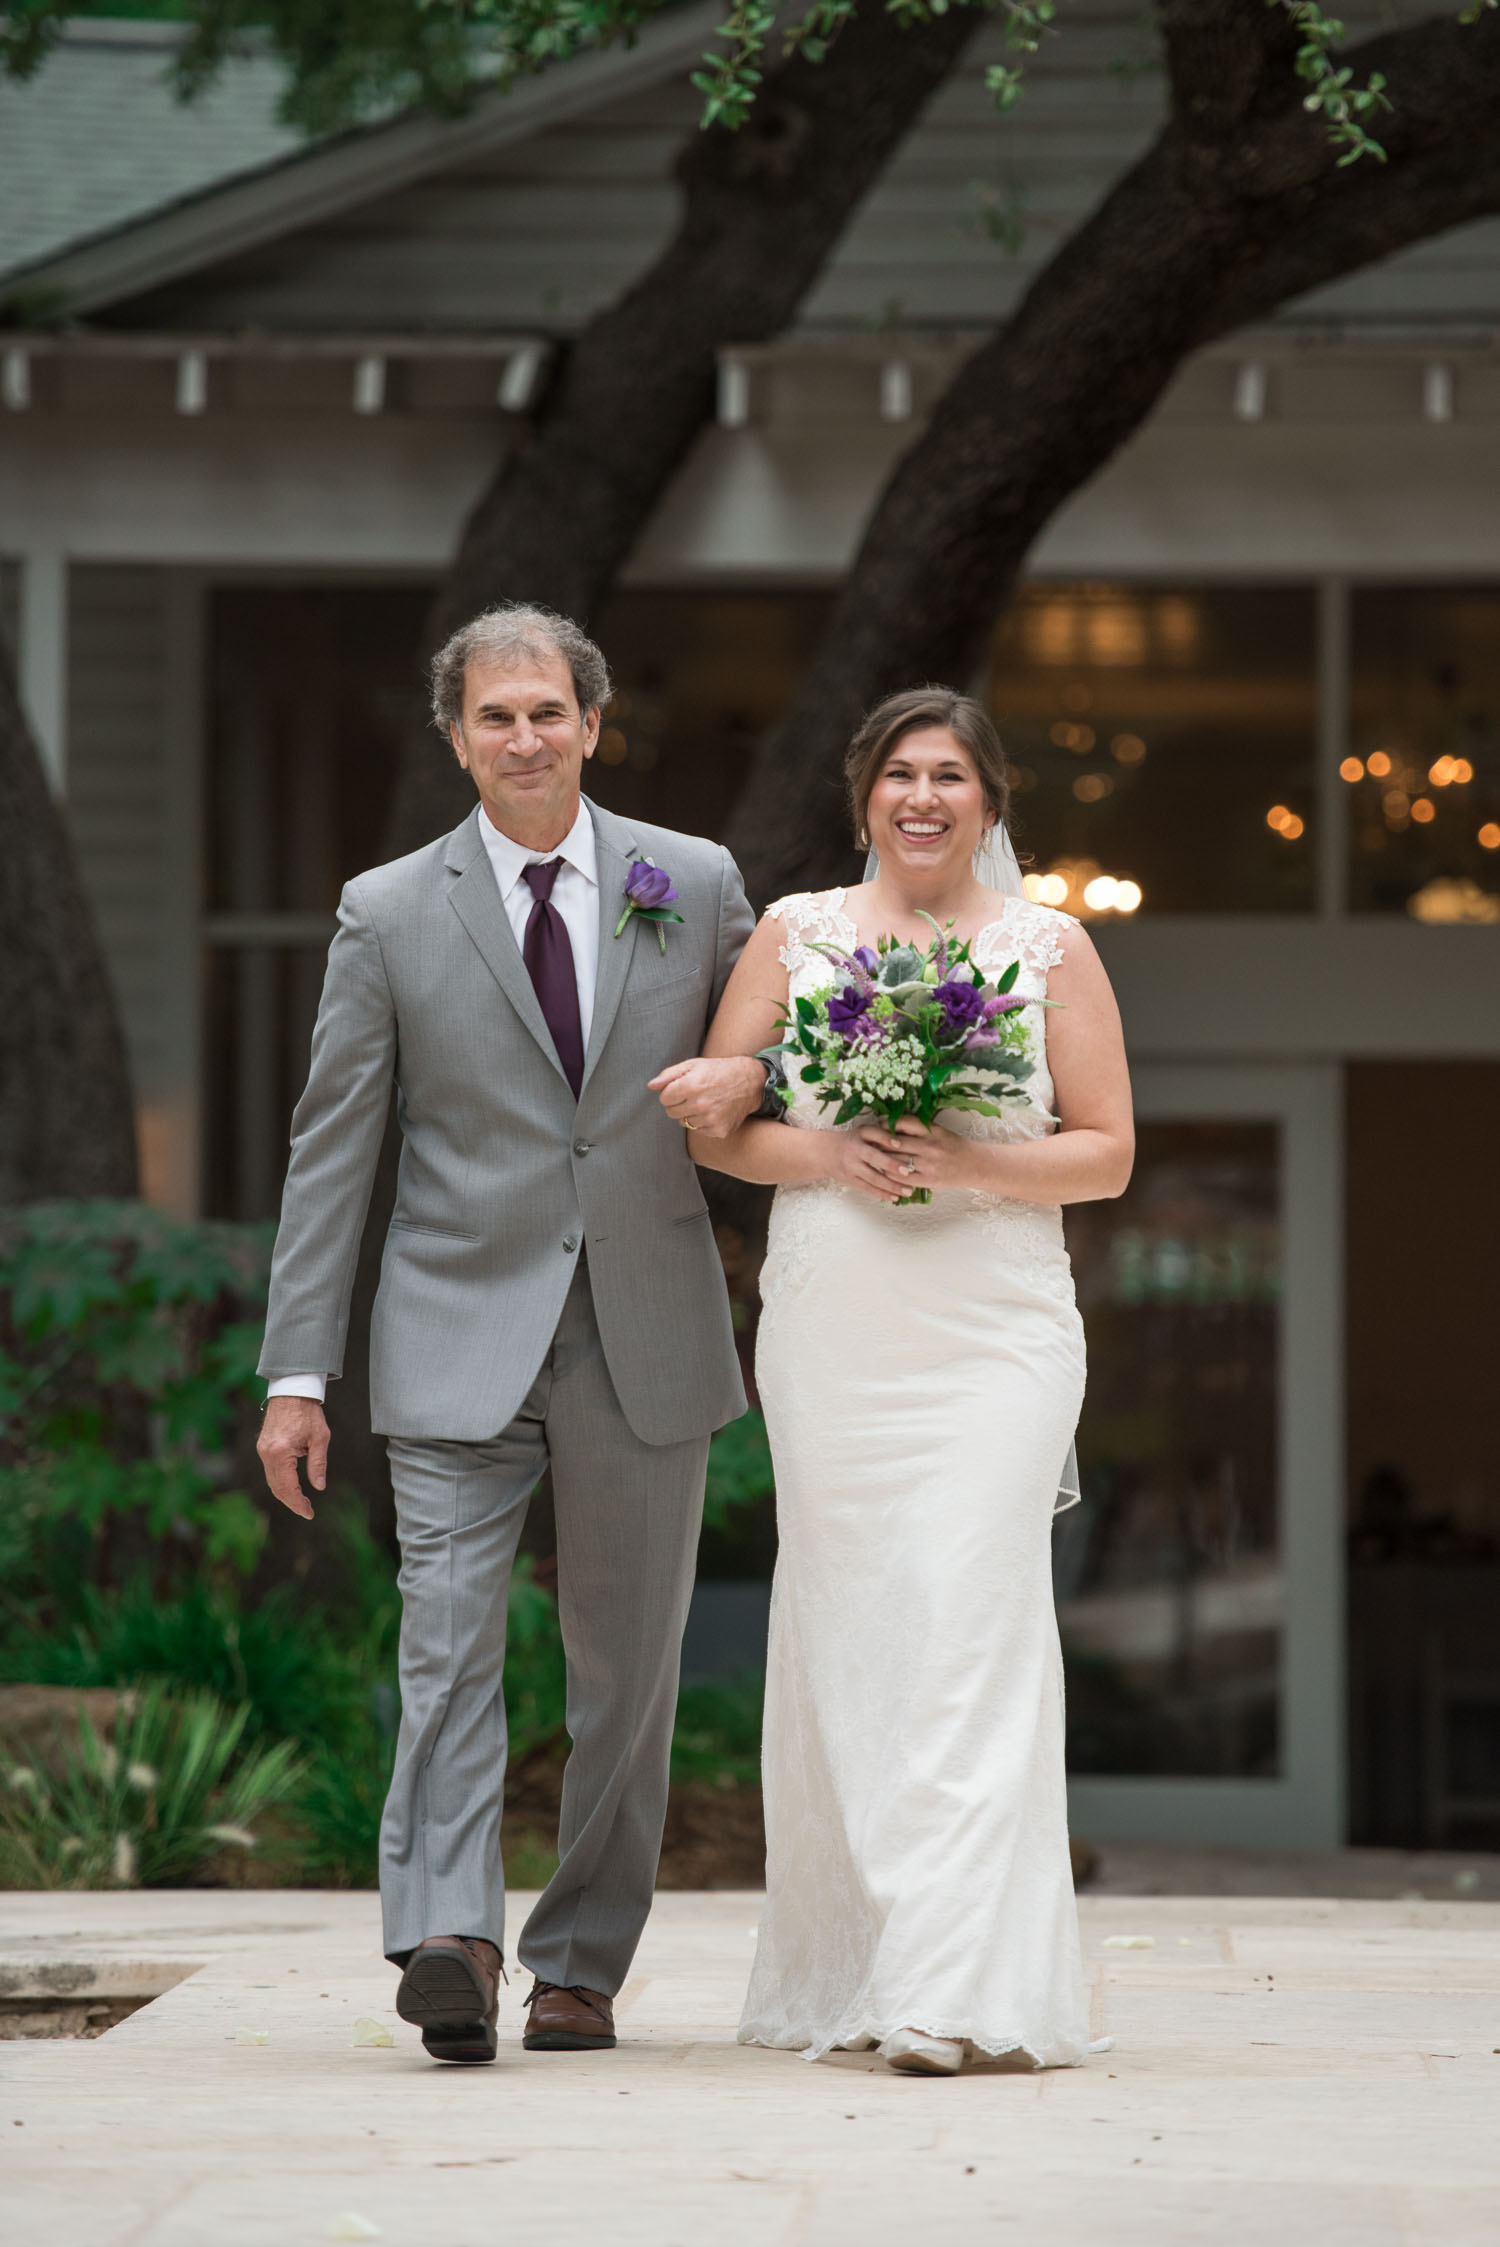 Alex and Austin Wedding Photography at Mercury Hall in Texas-73.jpg